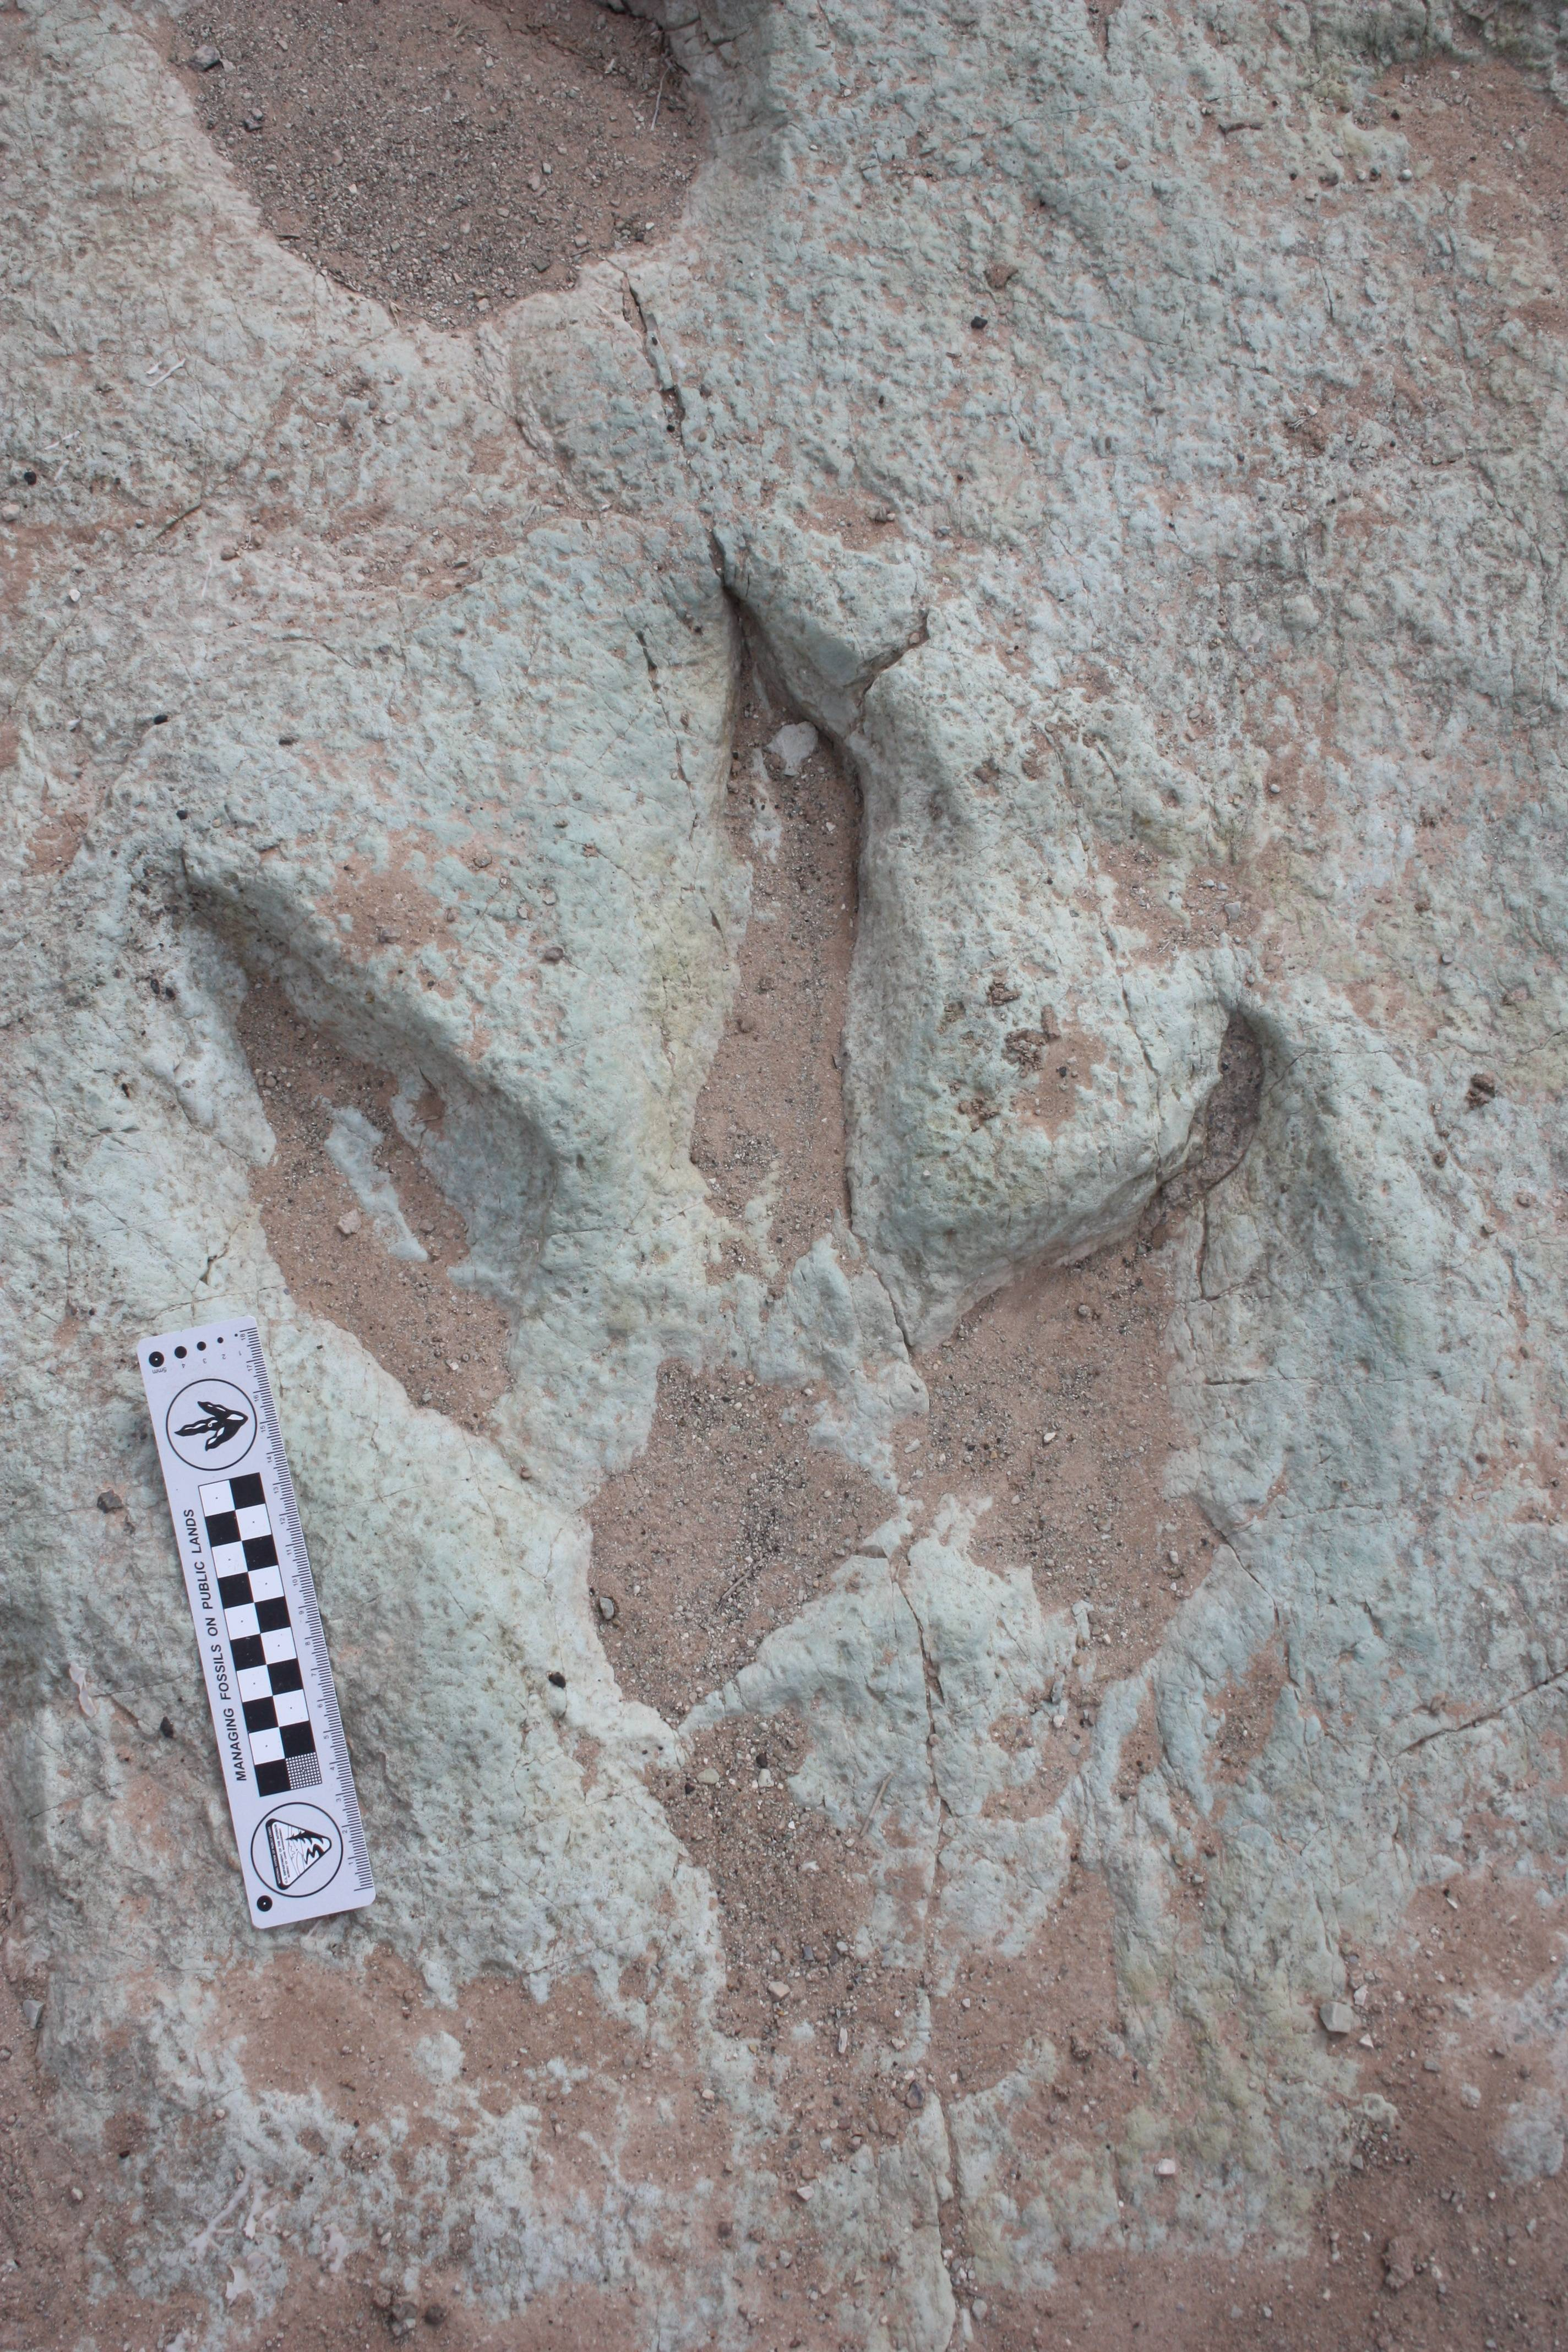 Theropod tracks found north of Moab, Utah. These tracks were left by large, three-toed, meat-eating dinosaurs, closely related to the dinosaur Siats. A dry wash full of 112-million-year-old dinosaur tracks are set to be opened to the public this fall near Moab.